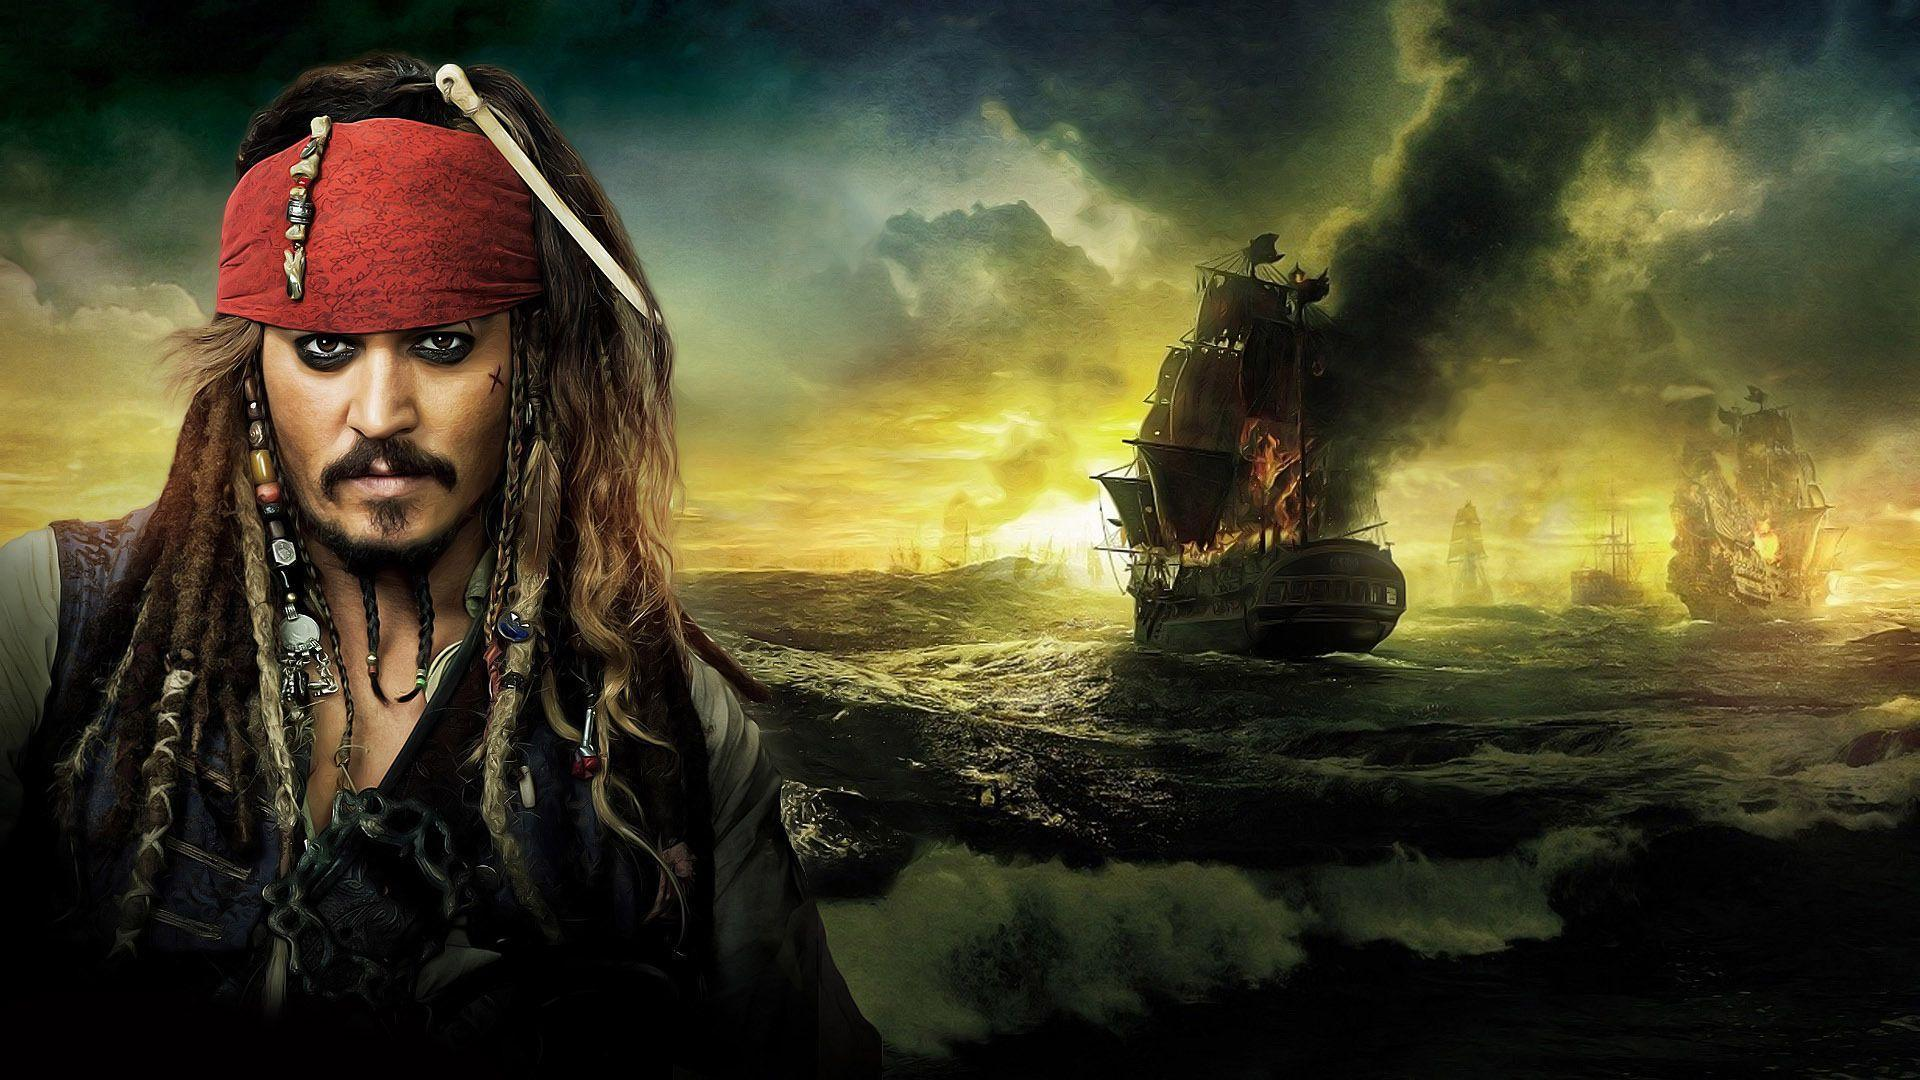 Pirates of the caribbean wallpapers wallpaper cave - Pirates of the caribbean images hd ...